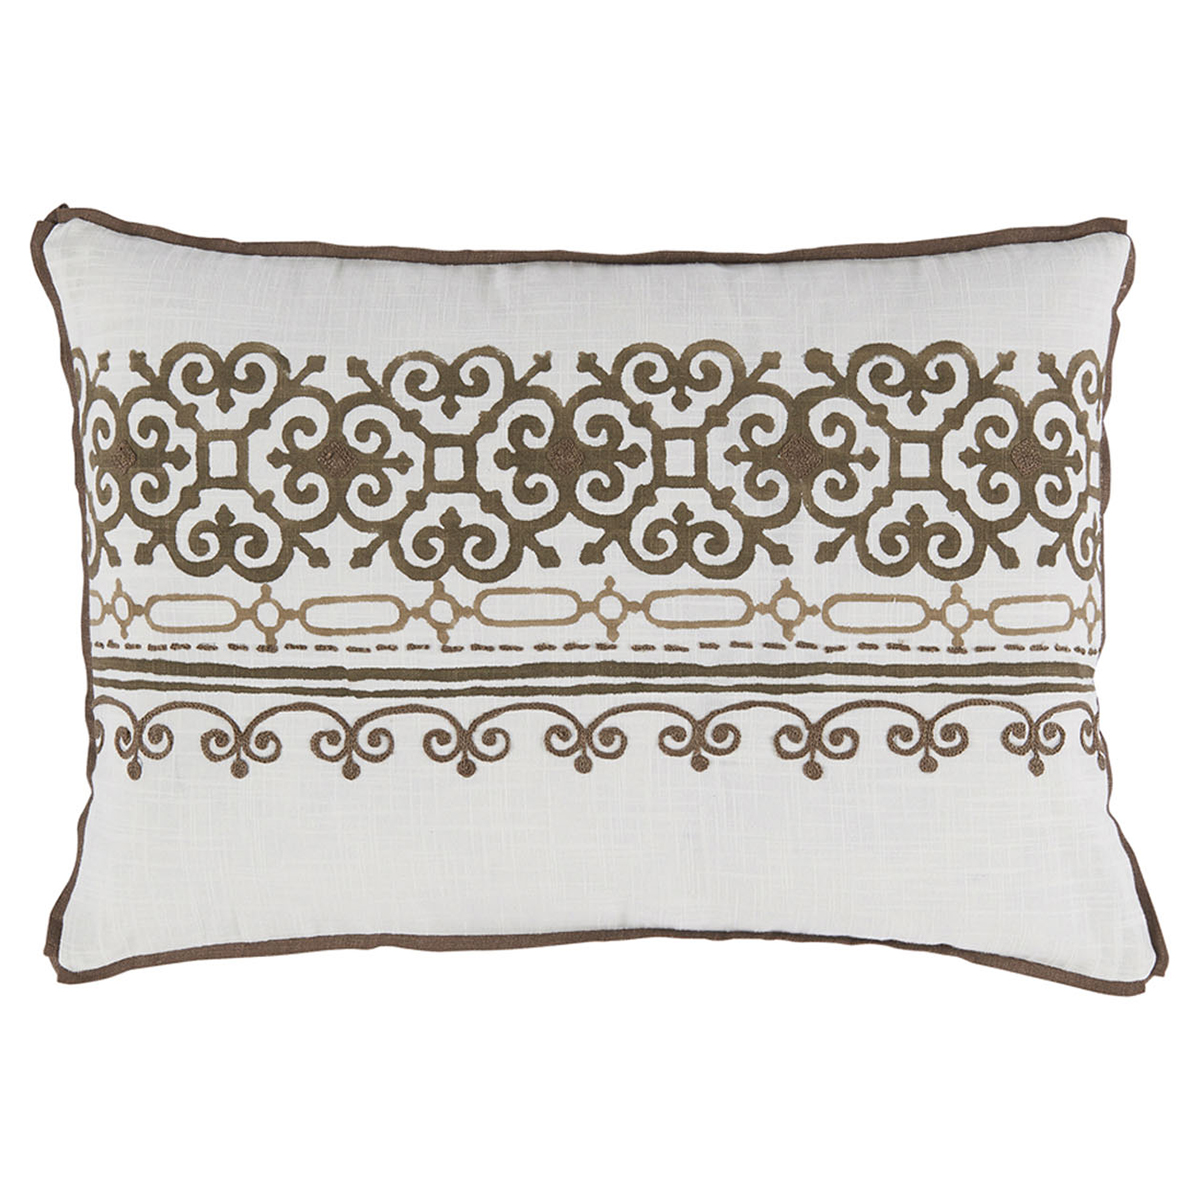 Lamont French Heritage Scroll Motif Brown Pillow - 13x19